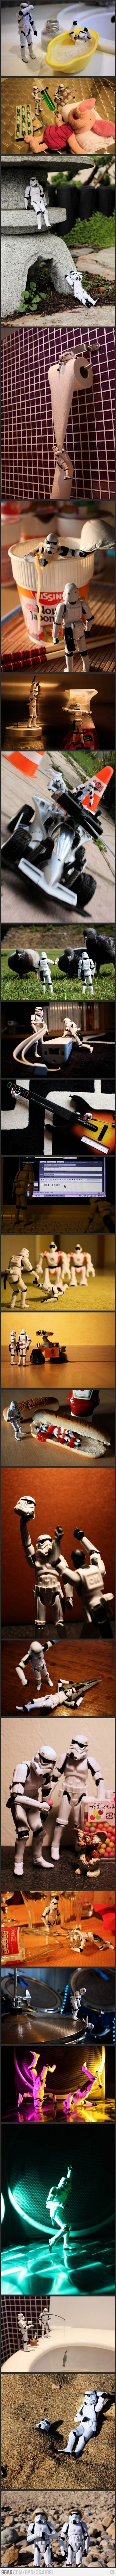 """This is great! My favorite is DiscoTrooper :) """"Stormtrooper - Moments of life""""...HILARIOUS! I'm going to have to do this instead of elf on the shelf!"""